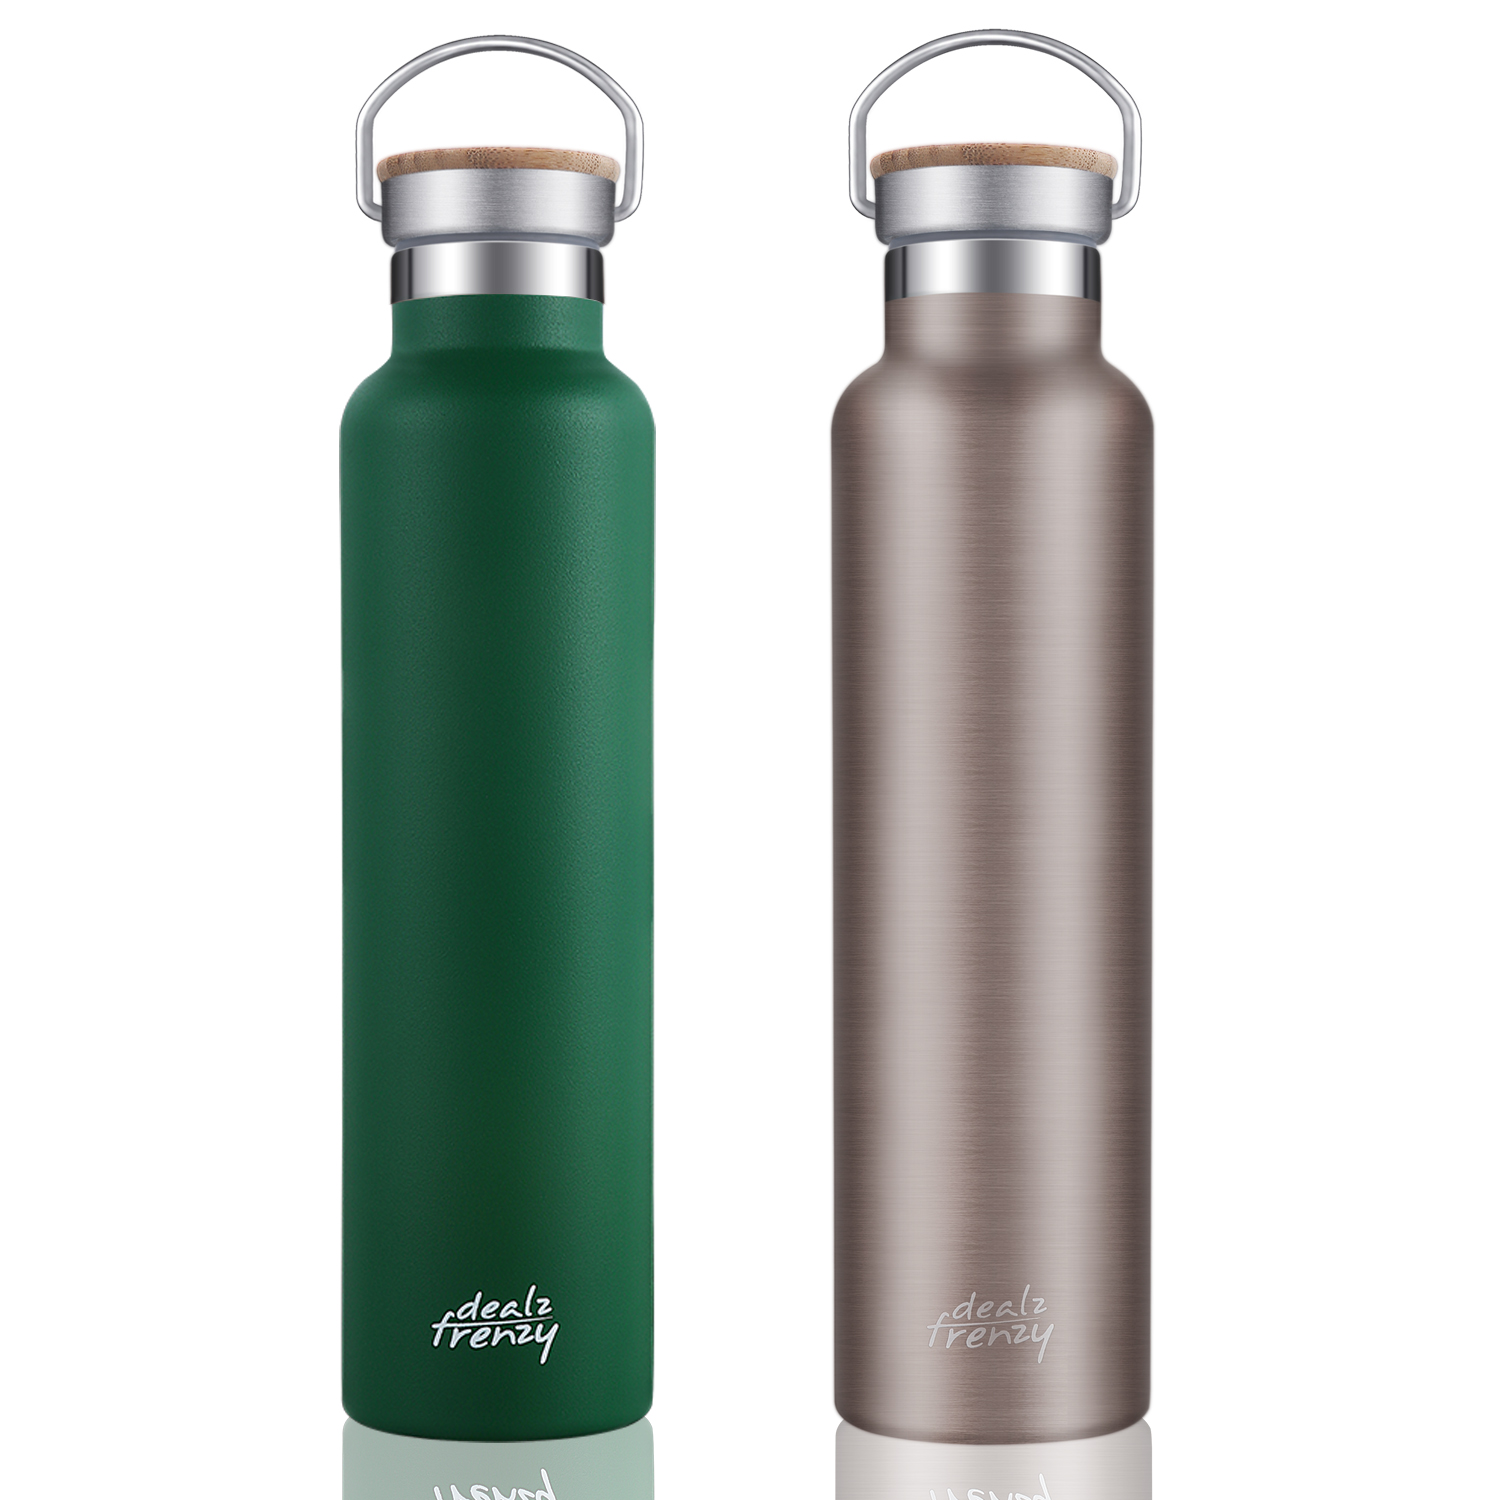 Double Wall Stainless Steel Wide Mouth Water Bottles with Bamboo Lid, Save 10% off